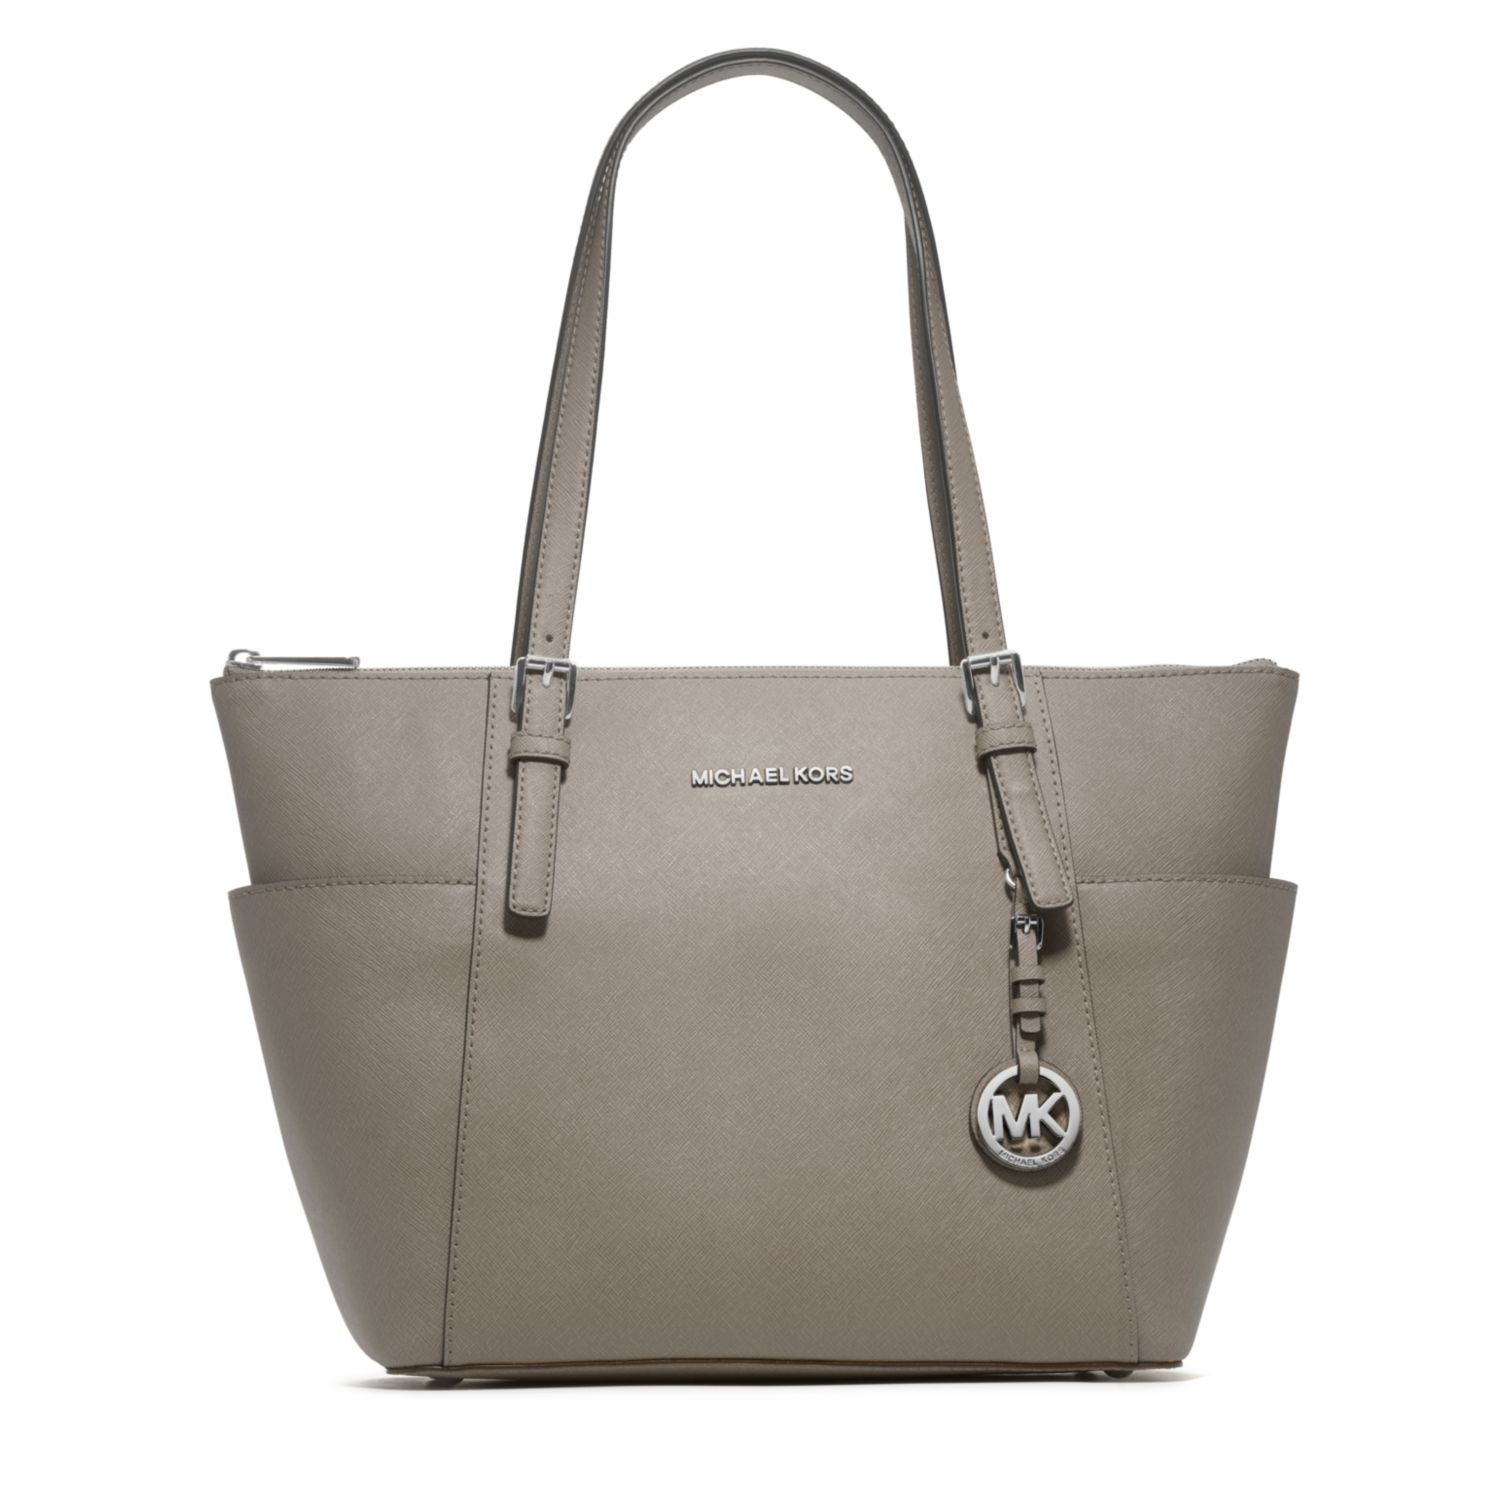 michael kors jet set top zip saffiano leather tote in gray. Black Bedroom Furniture Sets. Home Design Ideas